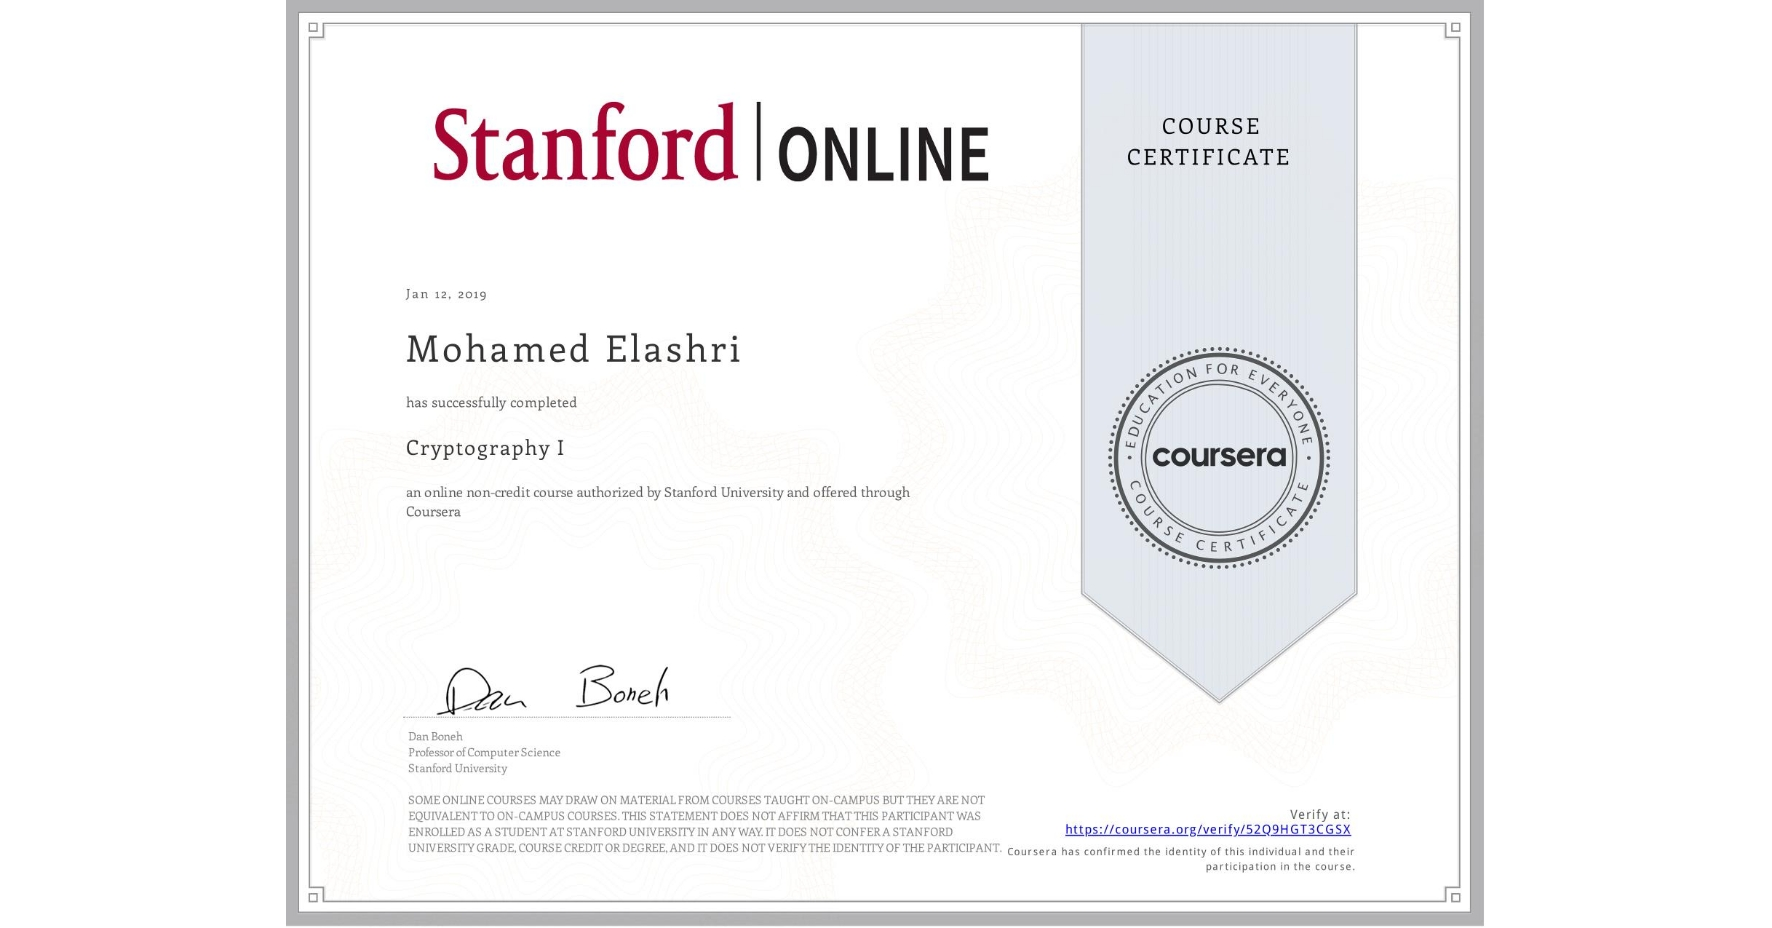 View certificate for Mohamed Elashri, Cryptography I, an online non-credit course authorized by Stanford University and offered through Coursera